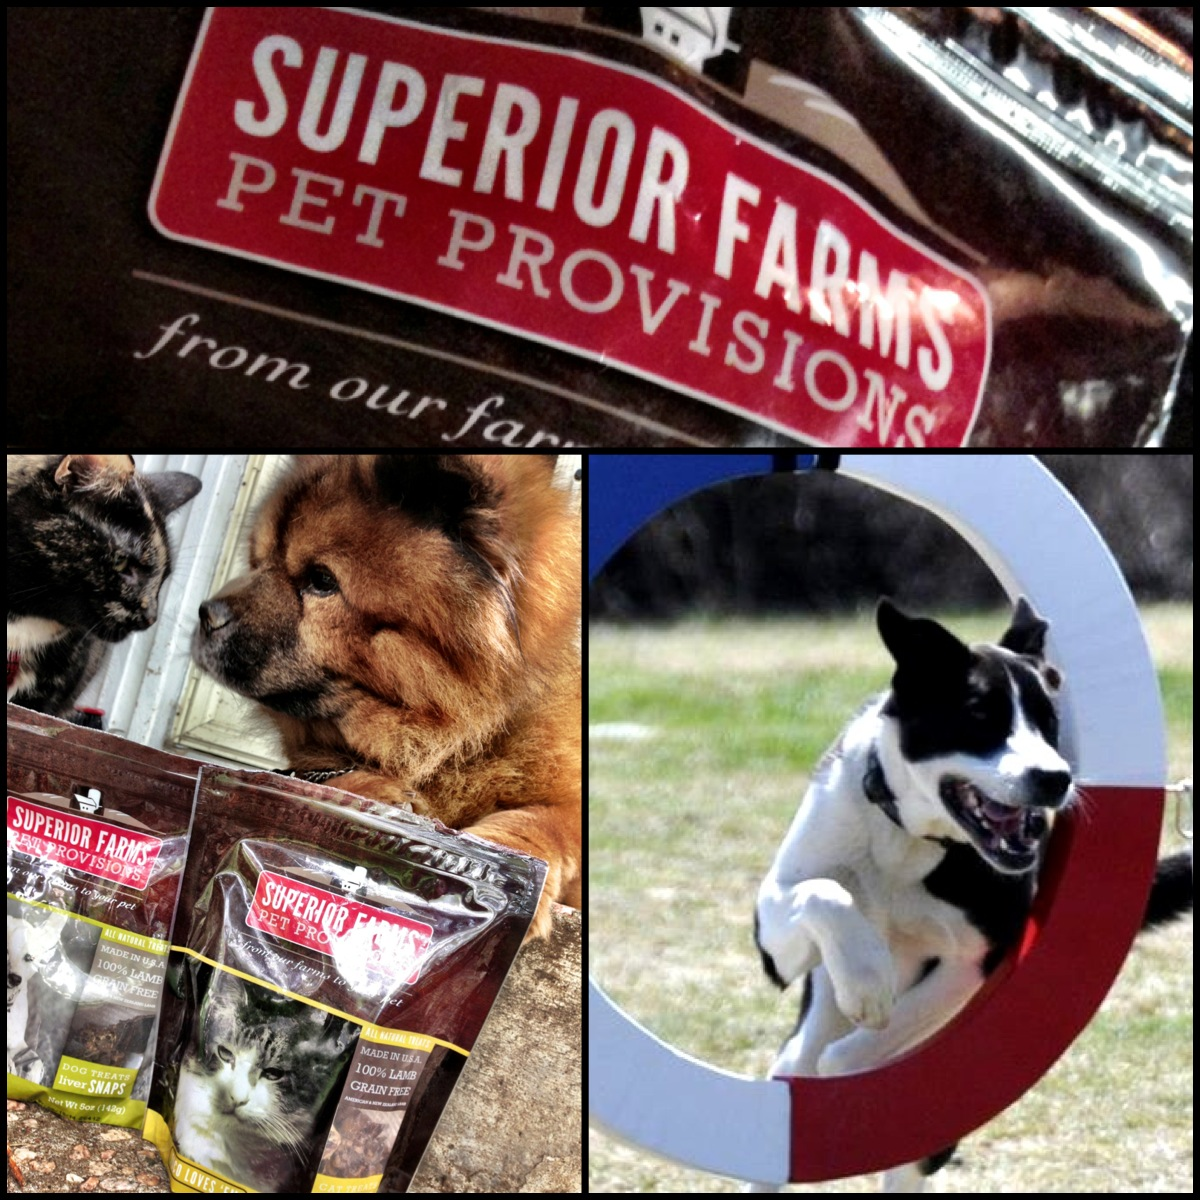 Product Review: Superior Farms Pet Provisions